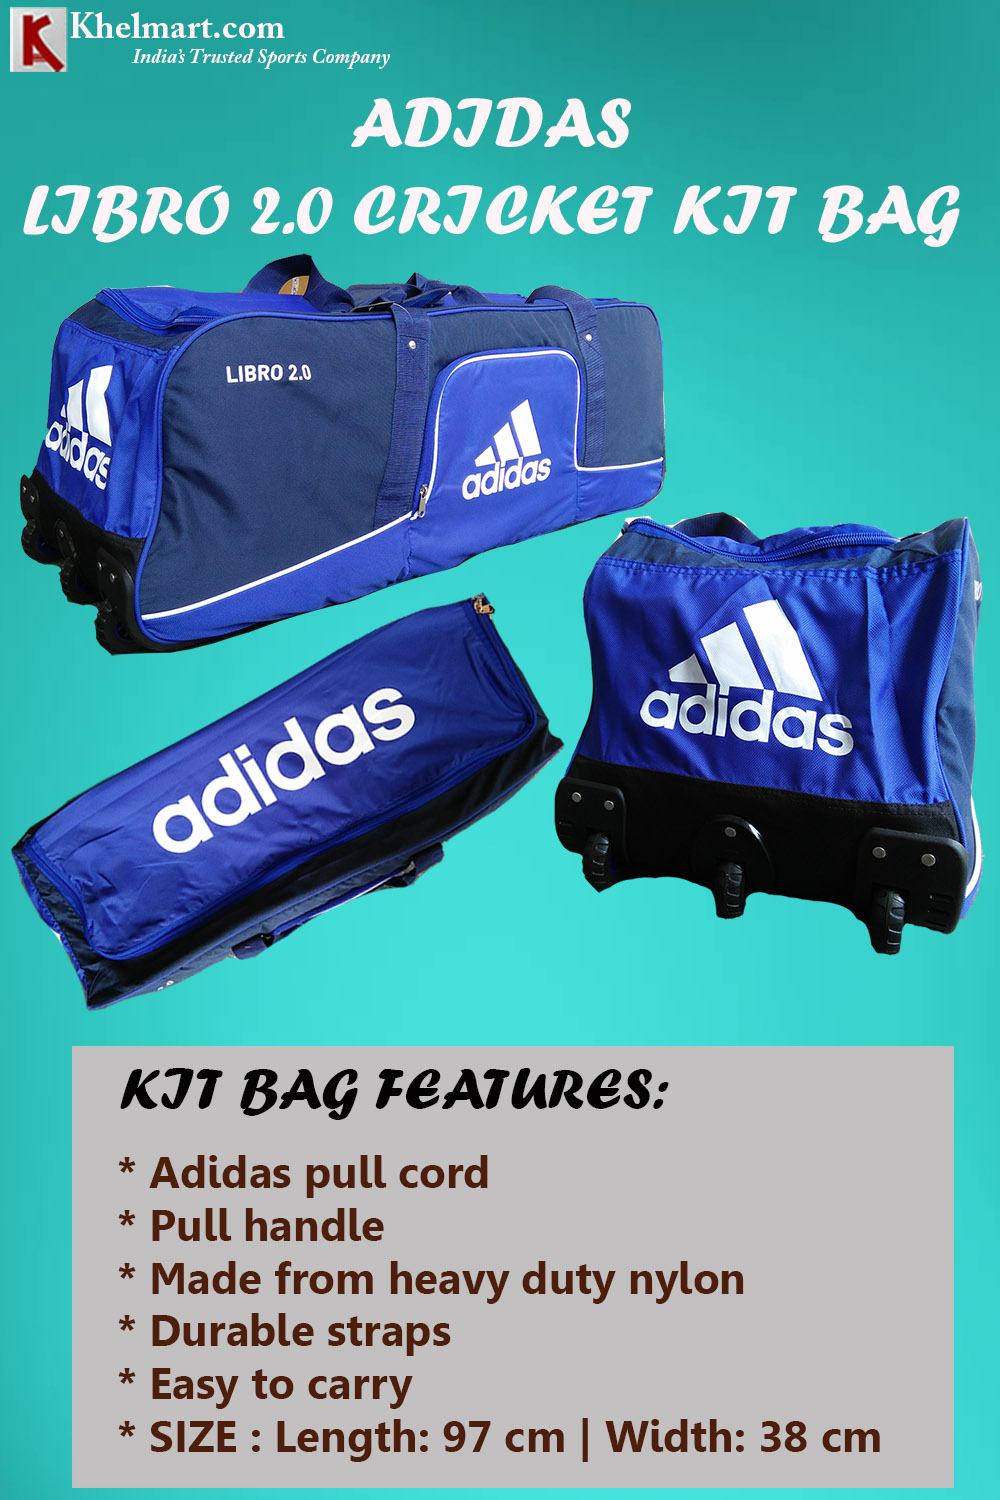 Adidas Libro 2Point0 Cricket Kit bag